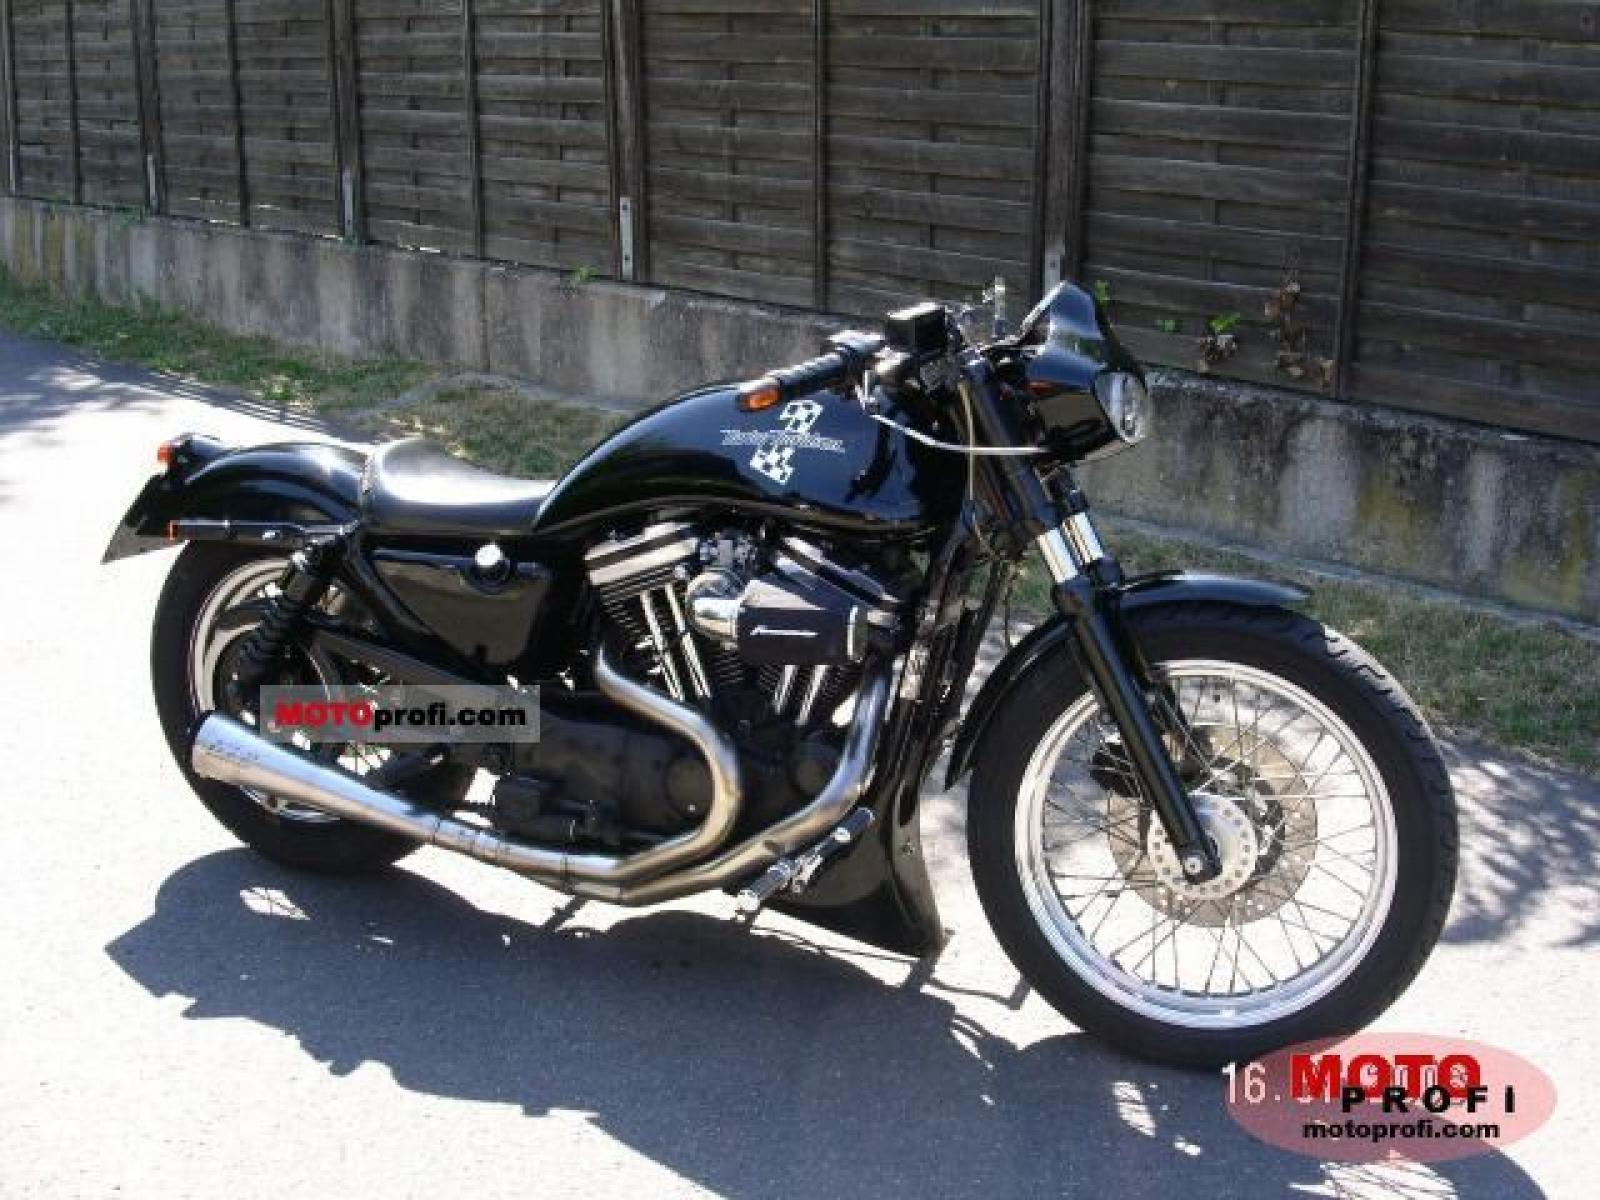 1989 Harley-Davidson XLH Sportster 1200 (reduced effect) #1